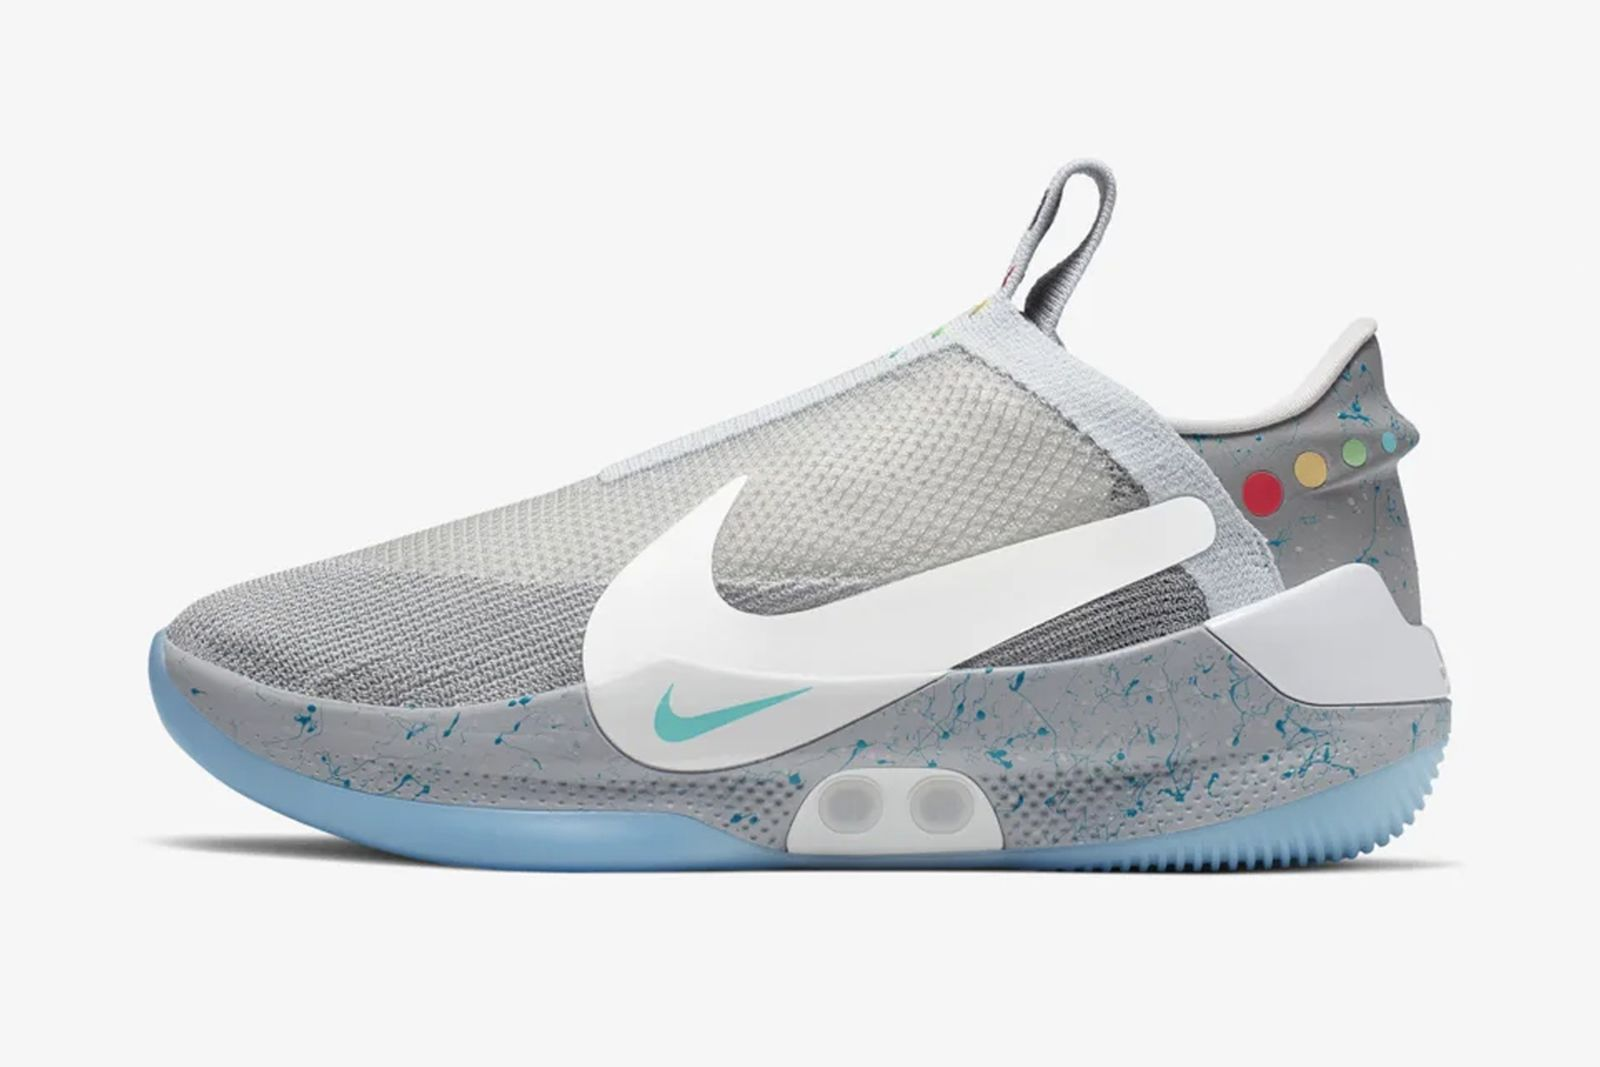 Nike Adapt Bb Air Mag When Where To Buy Today